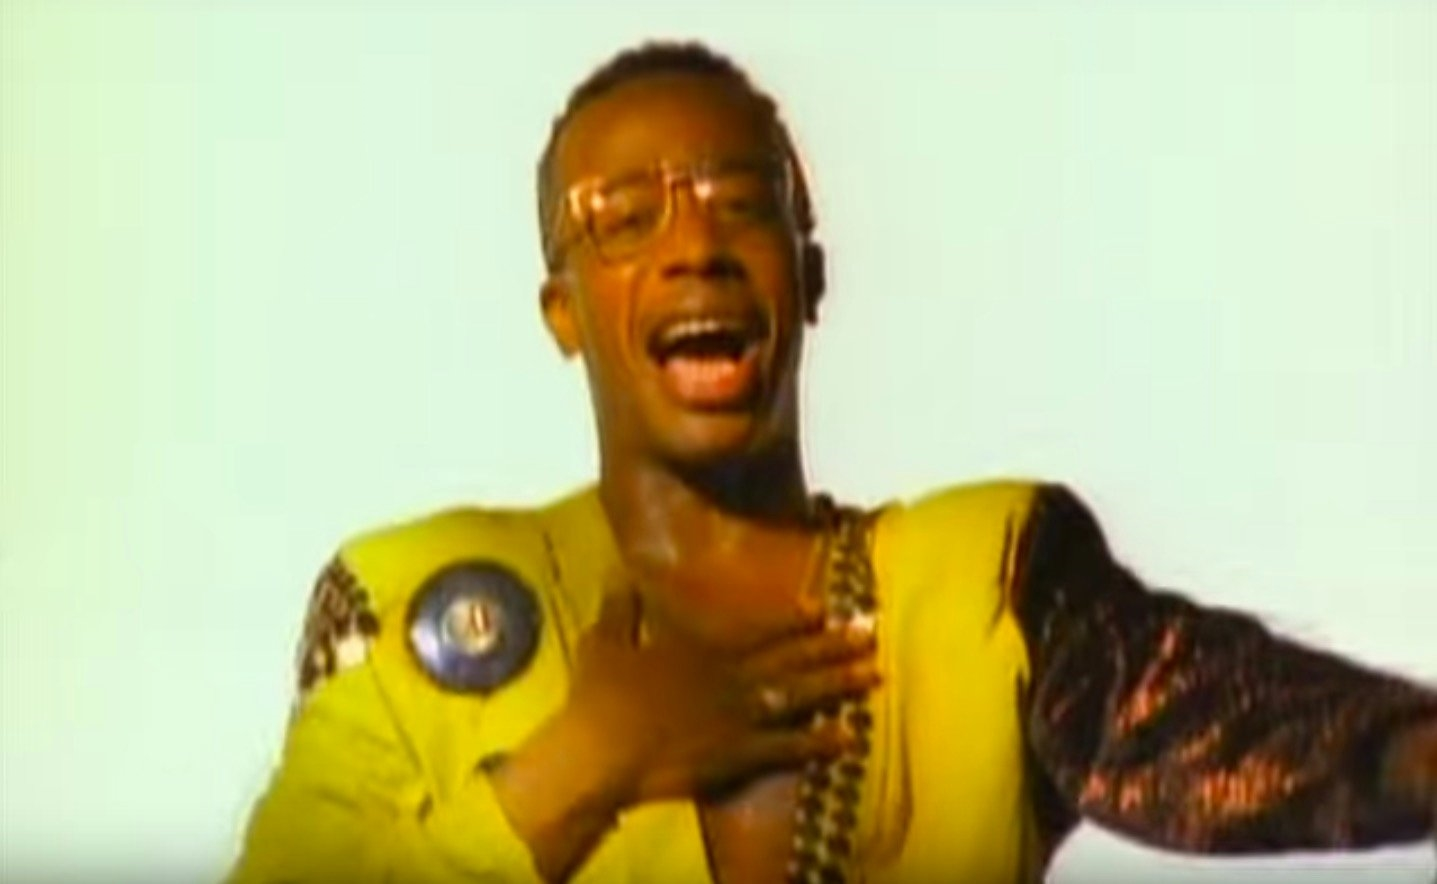 McHammers